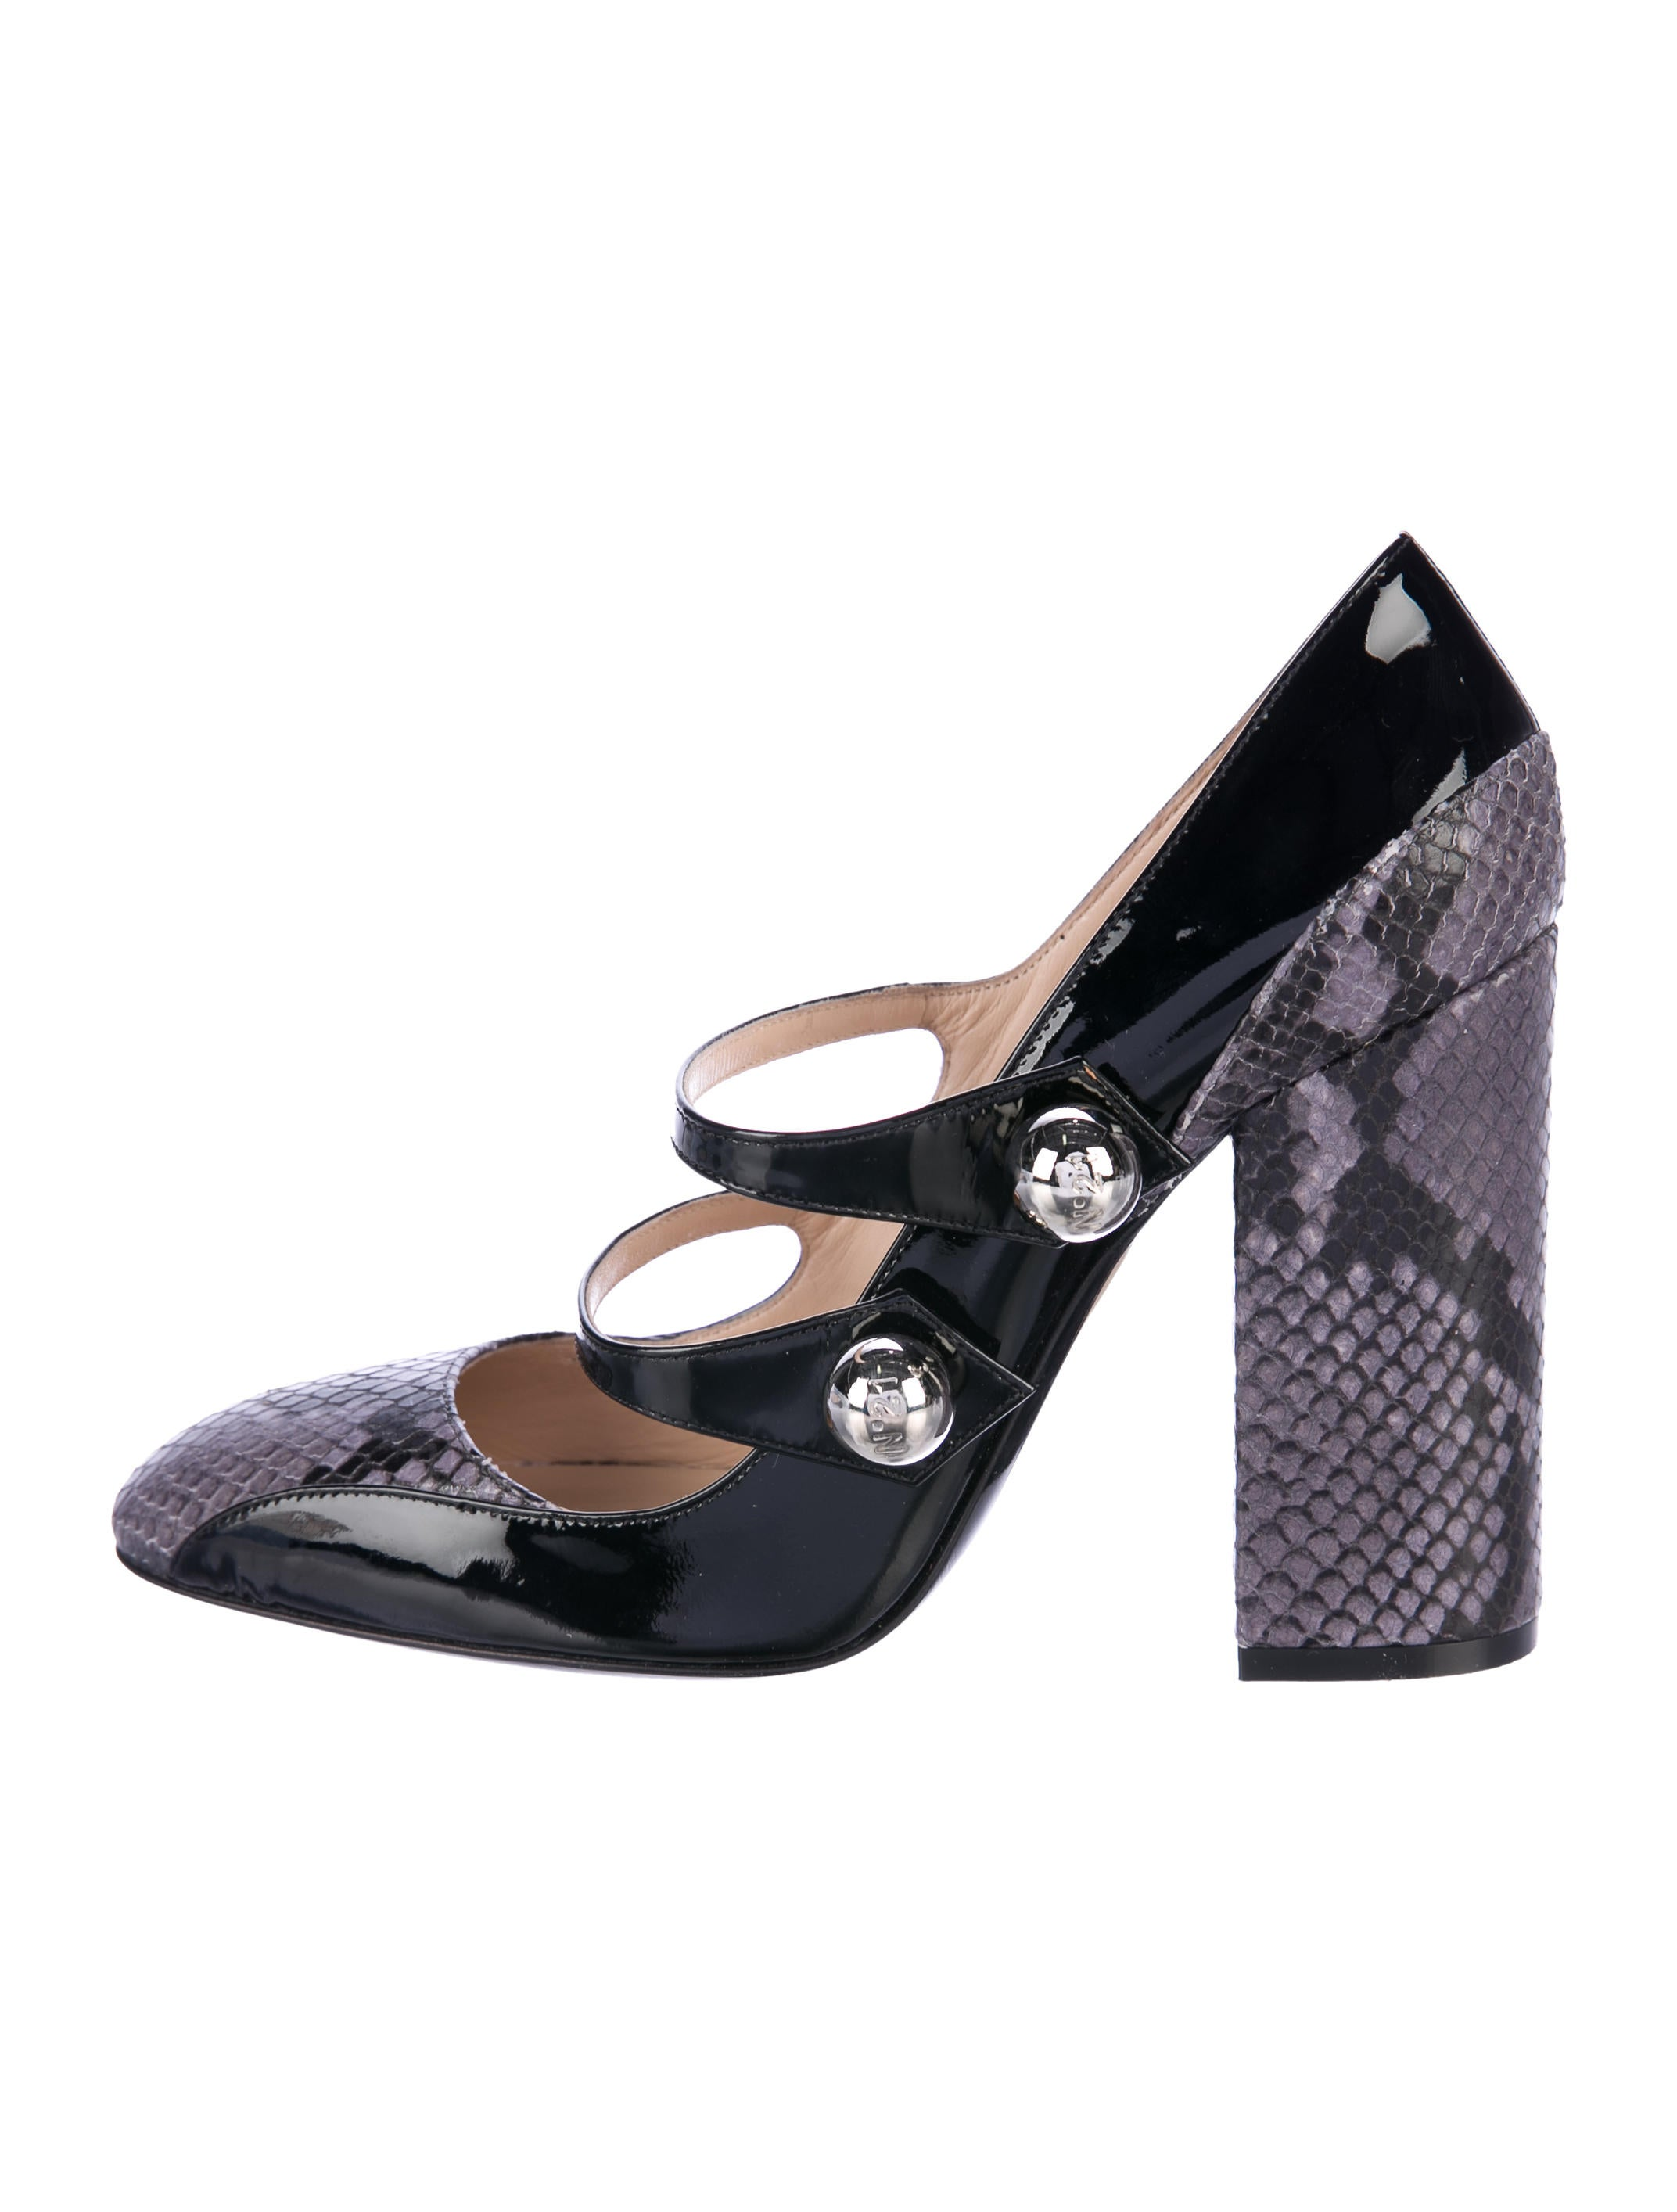 No. 21 Bicolor Mary Jane Pumps discounts for sale clearance store sale online pay with visa cheap online 6ZmZDvcs